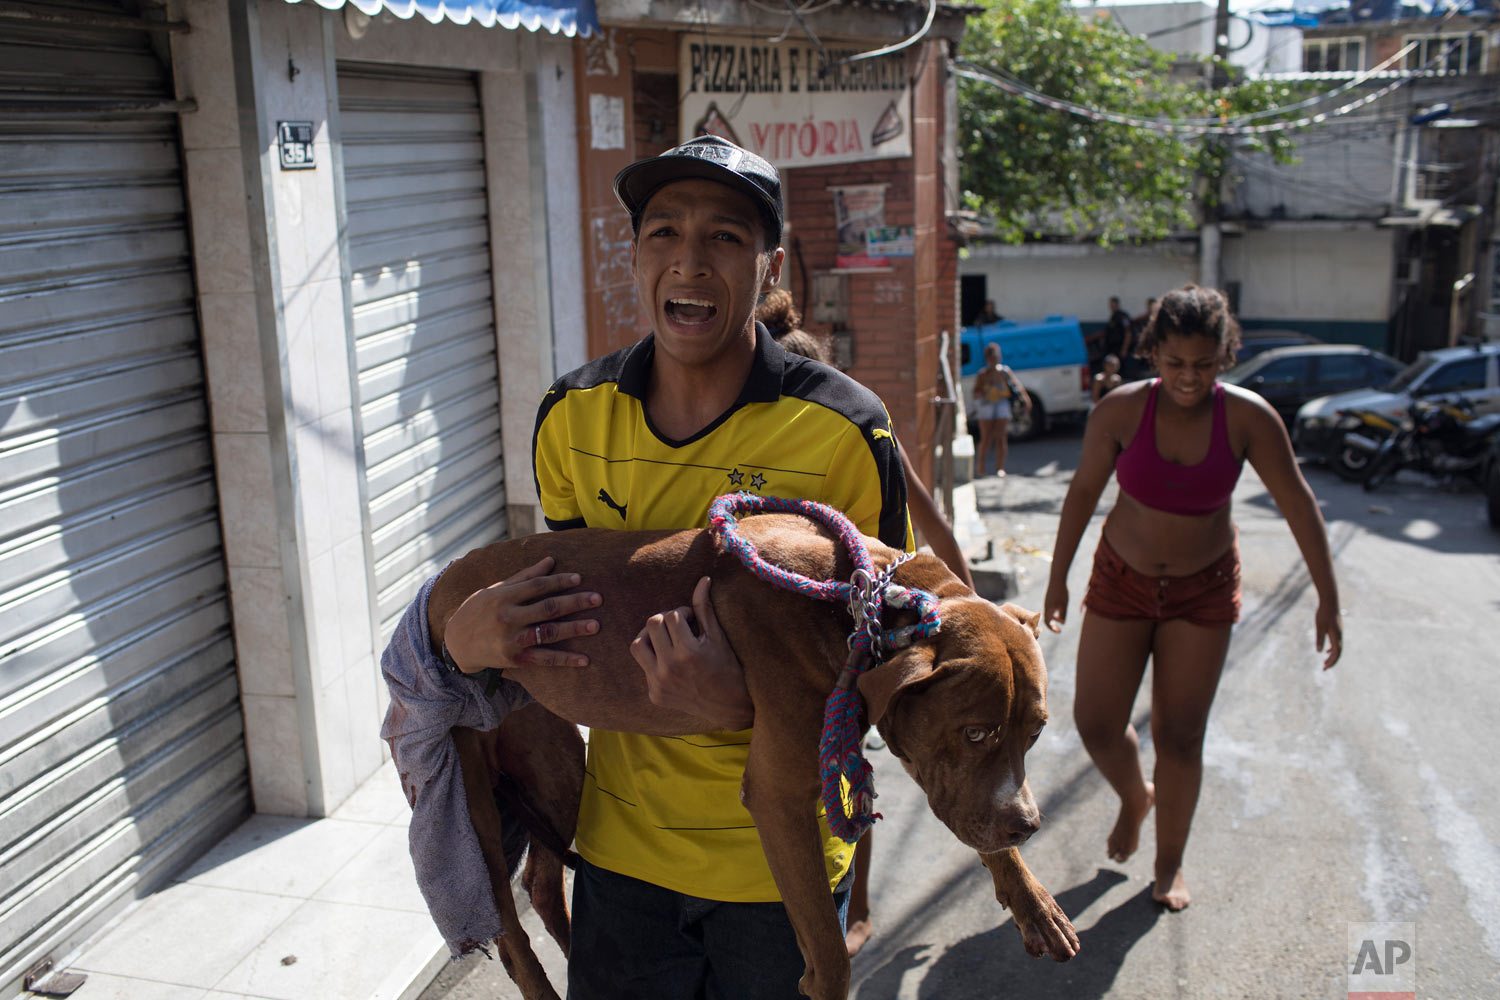 In this Jan. 25, 2018, photo, a youth carries his dog Thales who was hit by a stray bullet during a heavy exchange of gunfire between police and alleged drug traffickers in the Rocinha slum of Rio de Janeiro, Brazil. The military was put in charge of security in Rio de Janeiro state this year, but critics argue the intervention has targeted poor people and done nothing to address underlying issues like unemployment and income inequality. (AP Photo/Leo Correa)